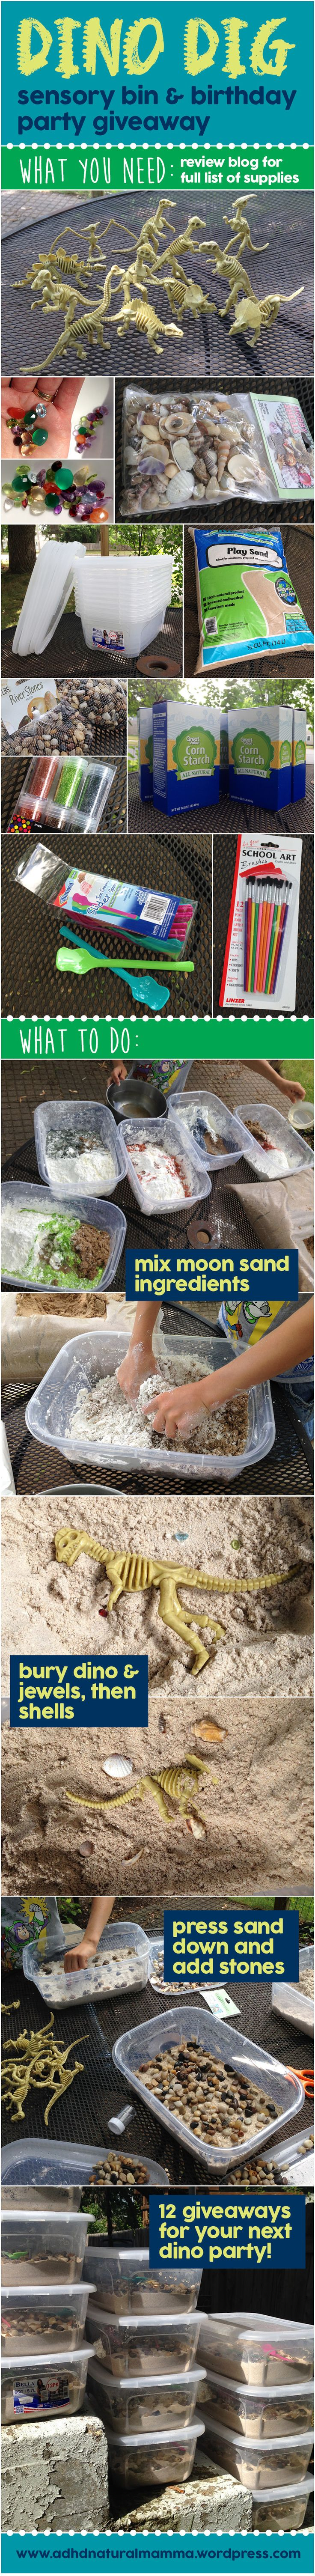 Dinosaur dig sensory bin and birthday party giveaway favor supplies and directions - paleontology excavation - moon sand recipe - dino fossils - real gemstones and seashells - sensory processing disorder - adhd - play - imagination